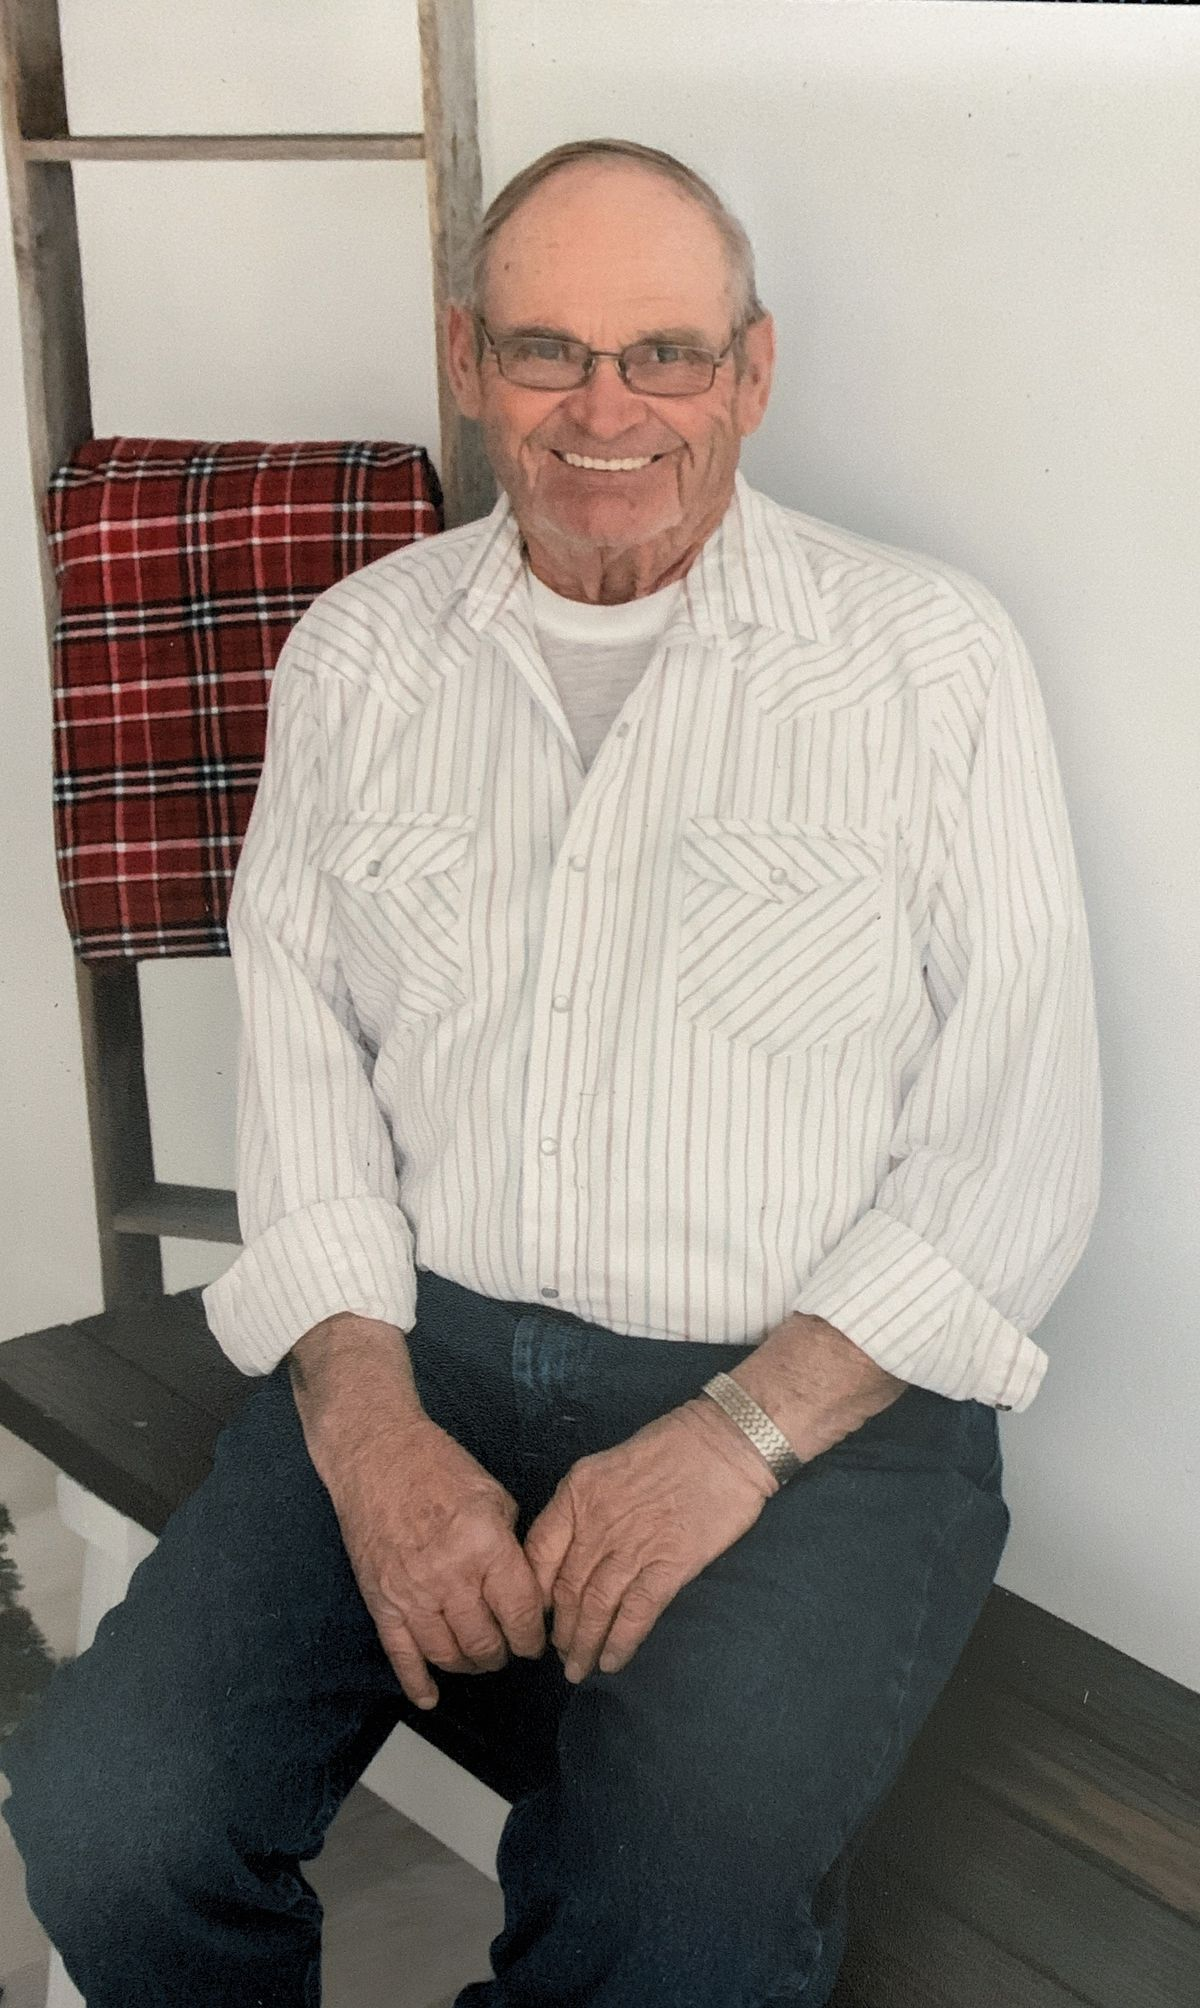 Francis Wankier, 82, died on Nov. 16, after battling COVID-19 for more than two weeks. He's one of more than 1,000 Utahns who've lost their lives to the pandemic.